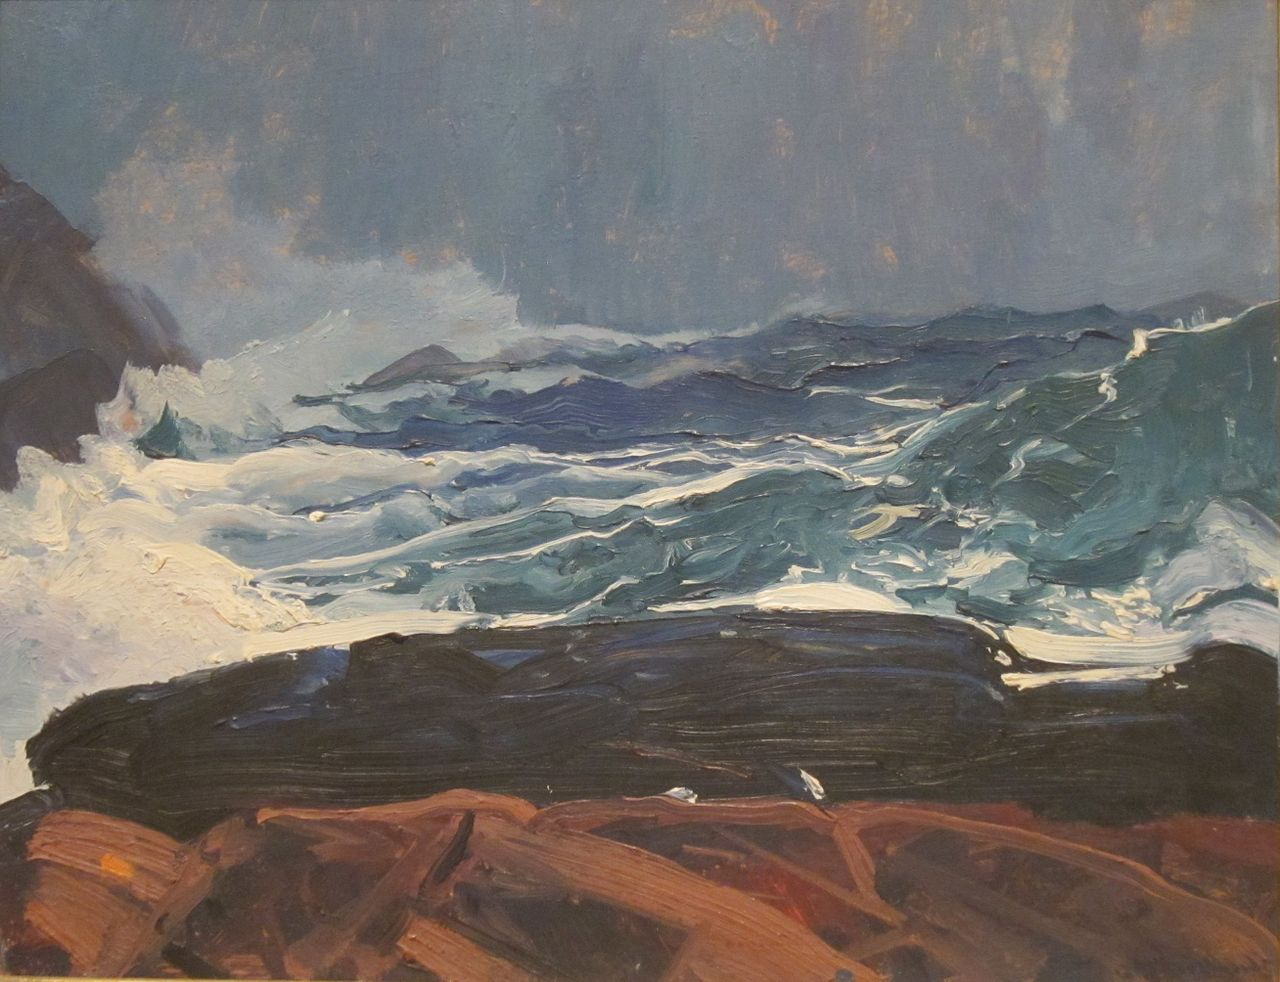 File:Lobster Cove, Monhegan, Maine by George Bellows, San ...